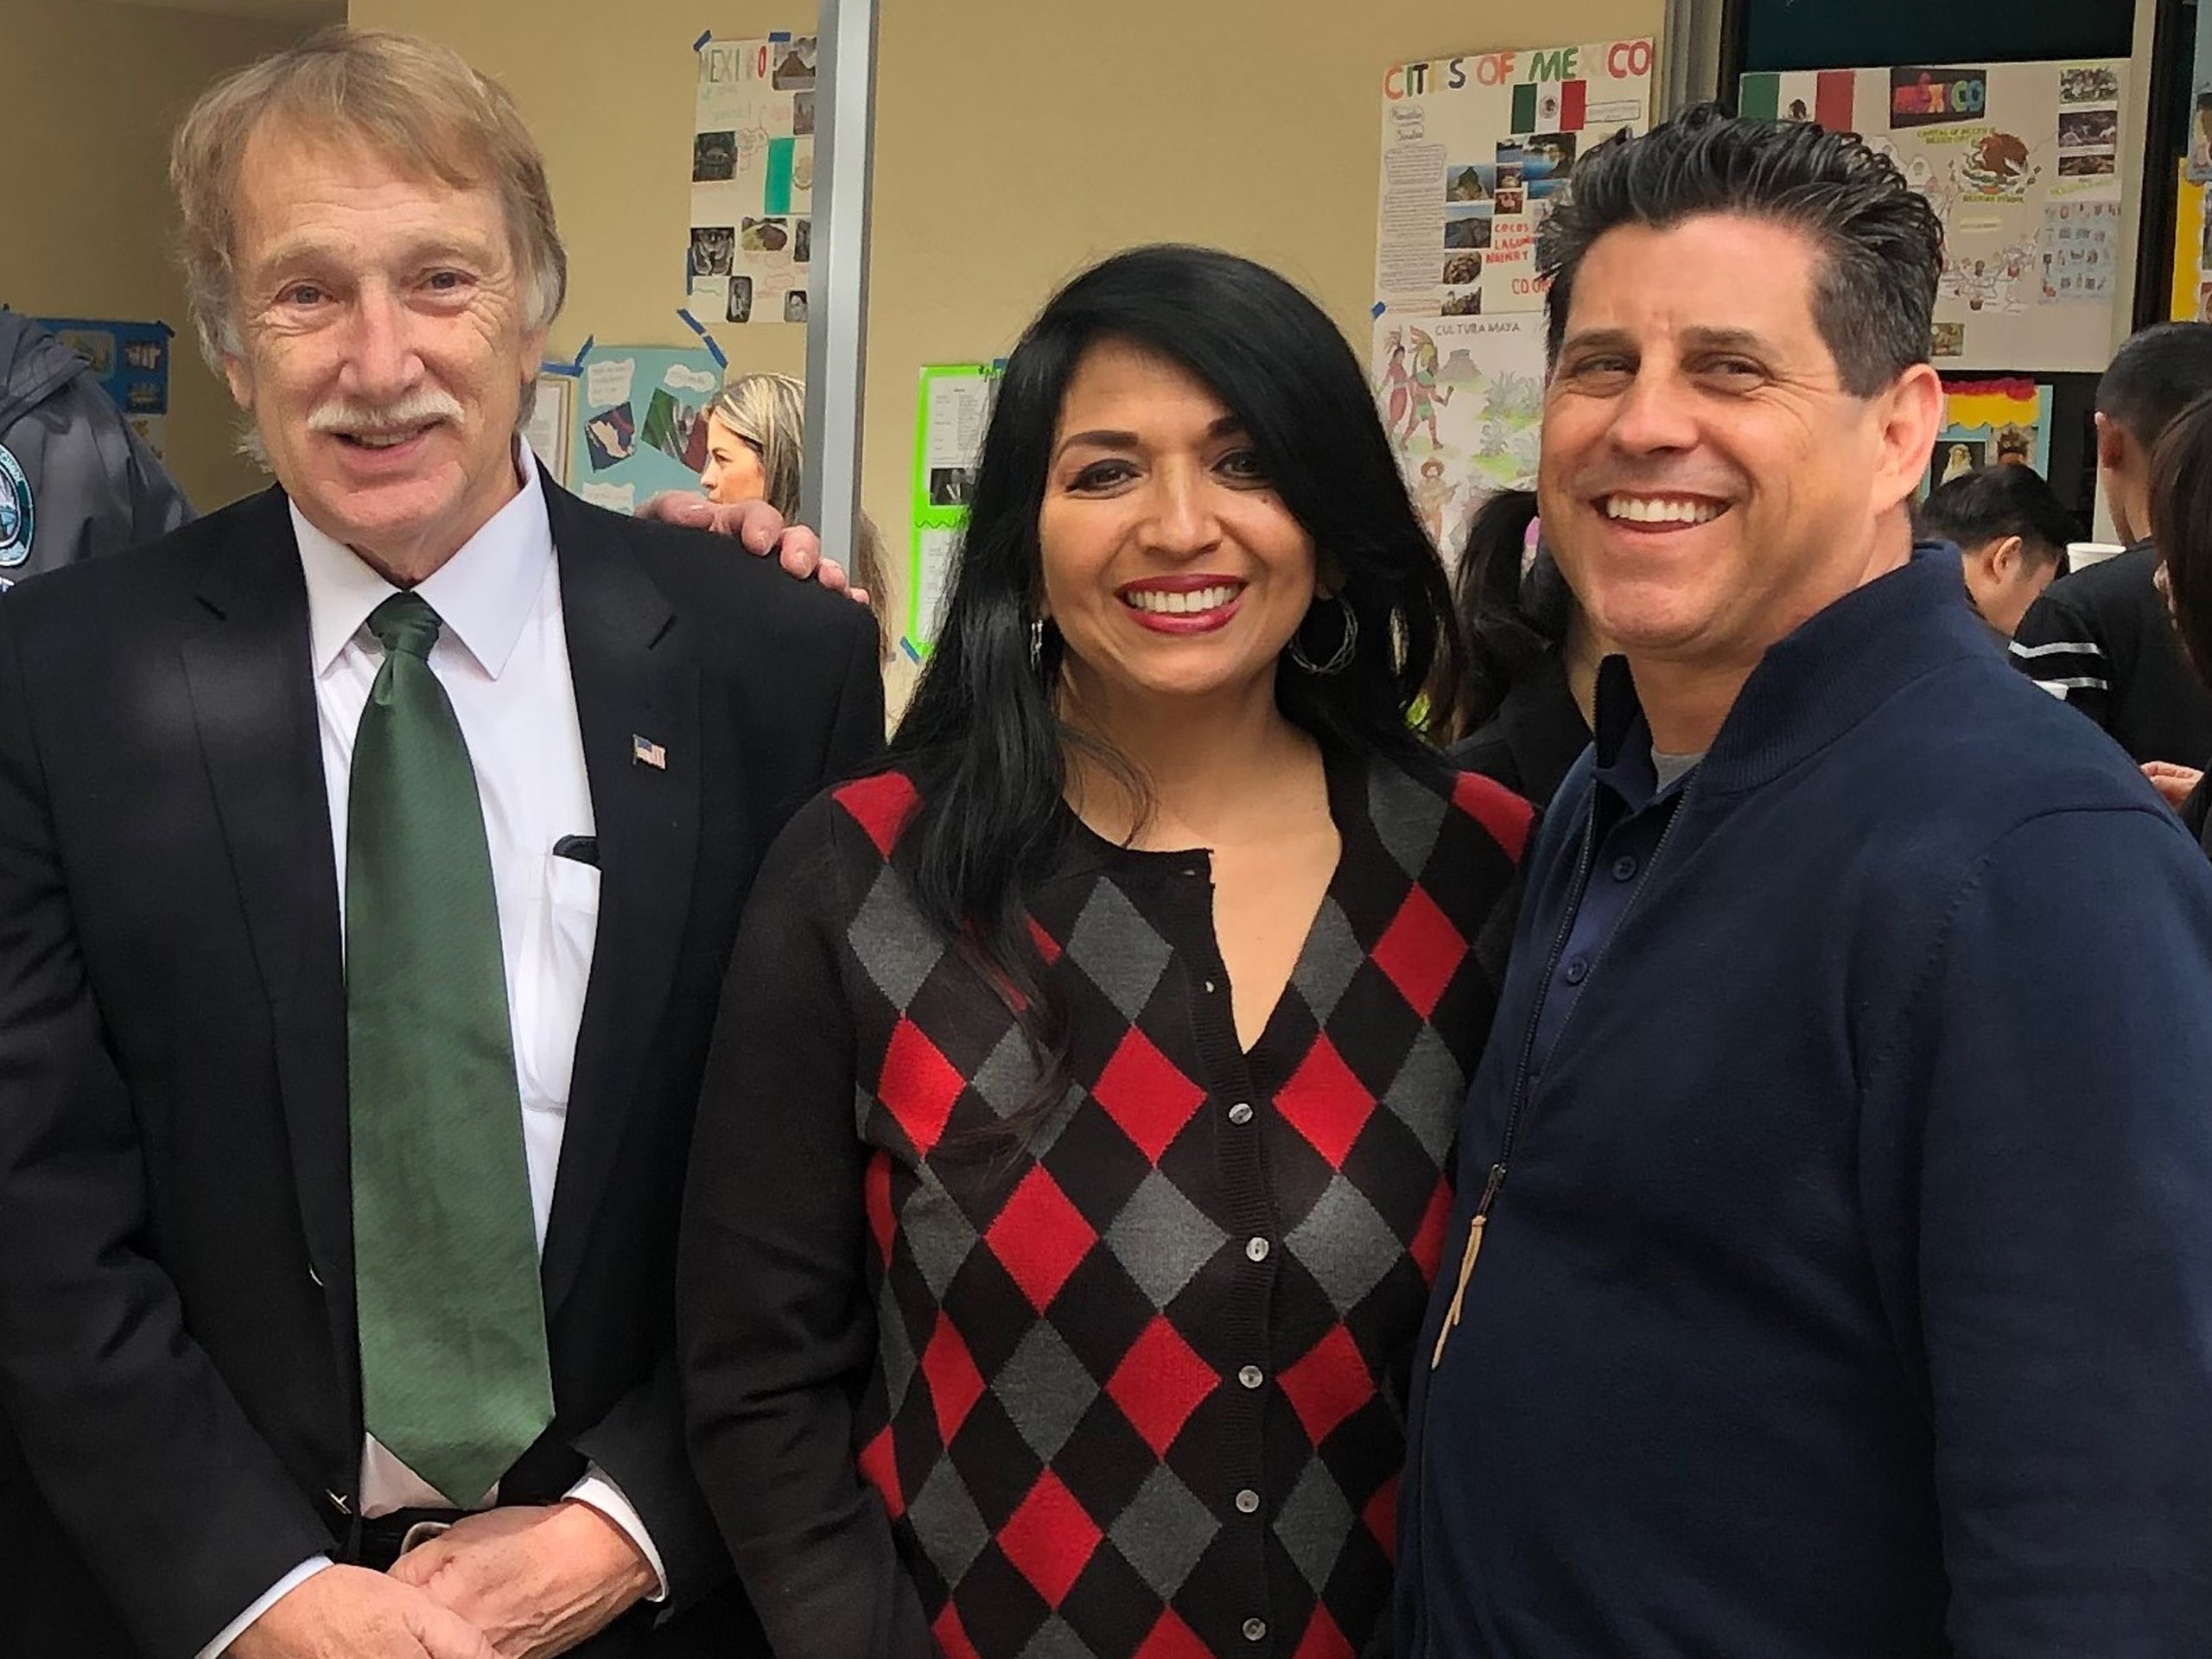 Board Member Mr. Rhinehart, Ms. Magallanes and Assistant Superintendent Dr. Hollister